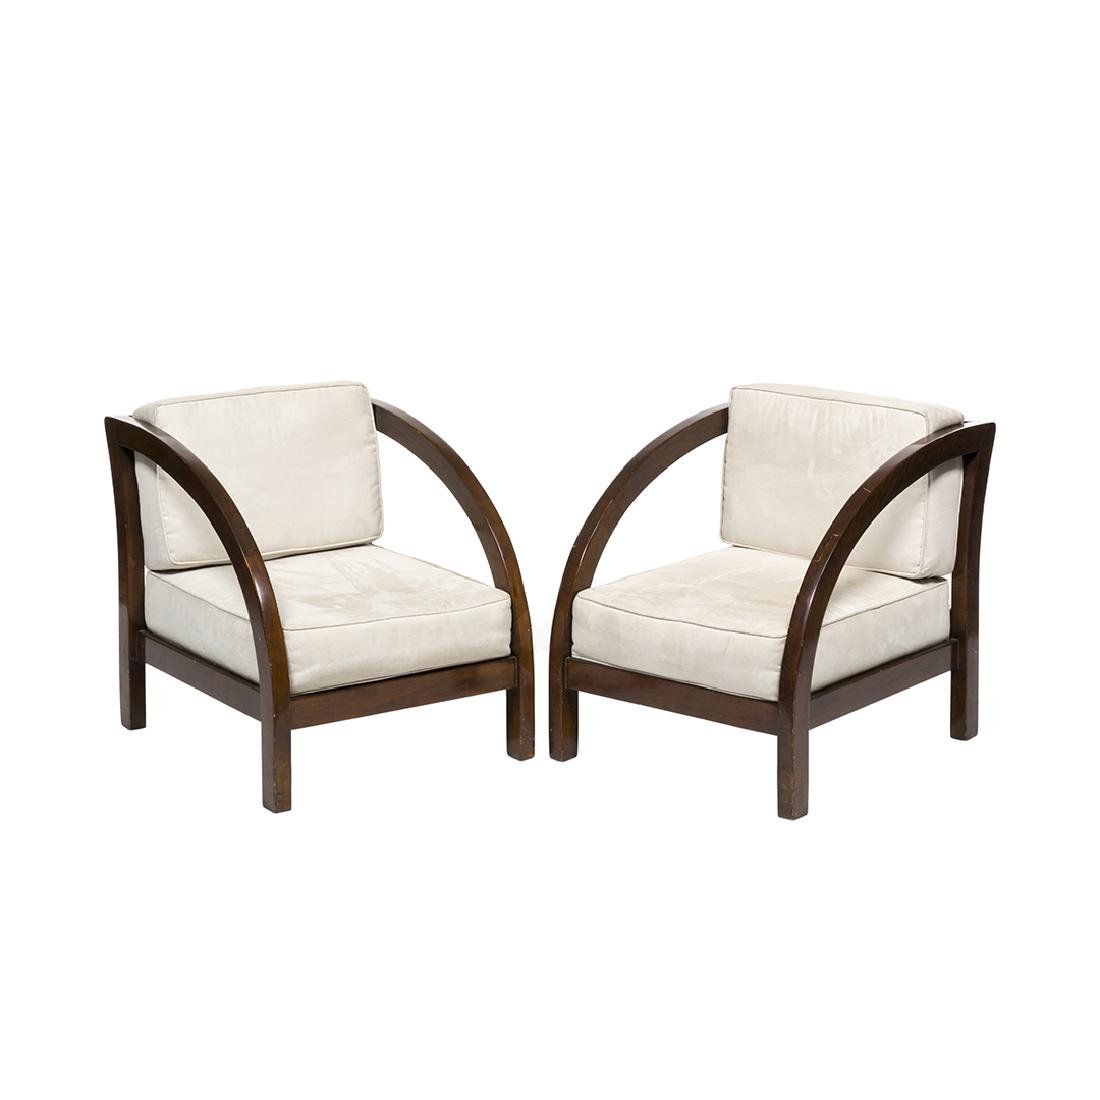 Modernage D Chairs (2)